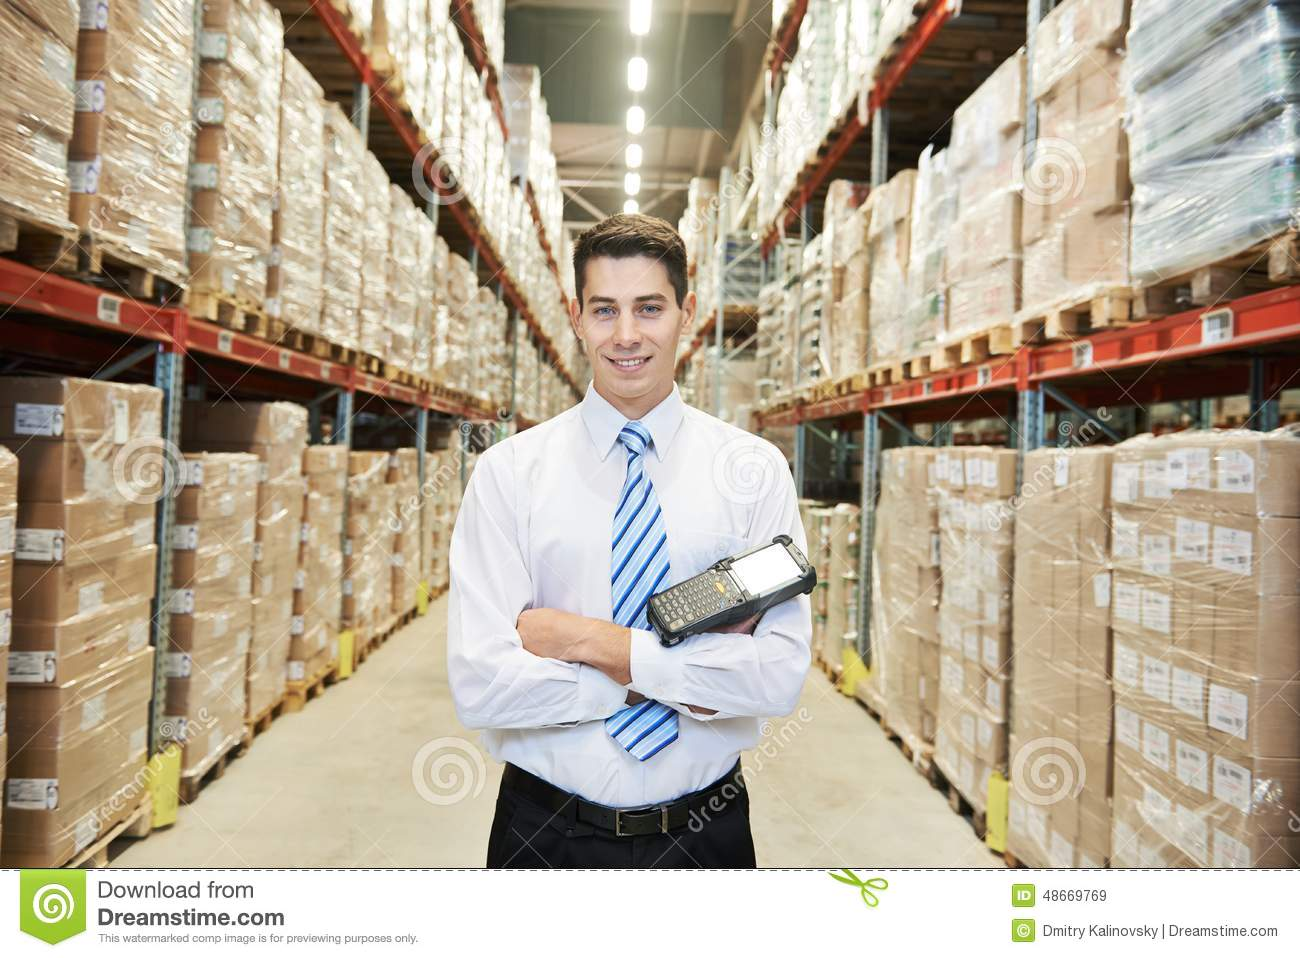 director of ecommerce warehousing ope Ecommerce is an area where companies can gain competitive advantage with dematic's automated solutions for supply chain, distribution, and warehouse management.